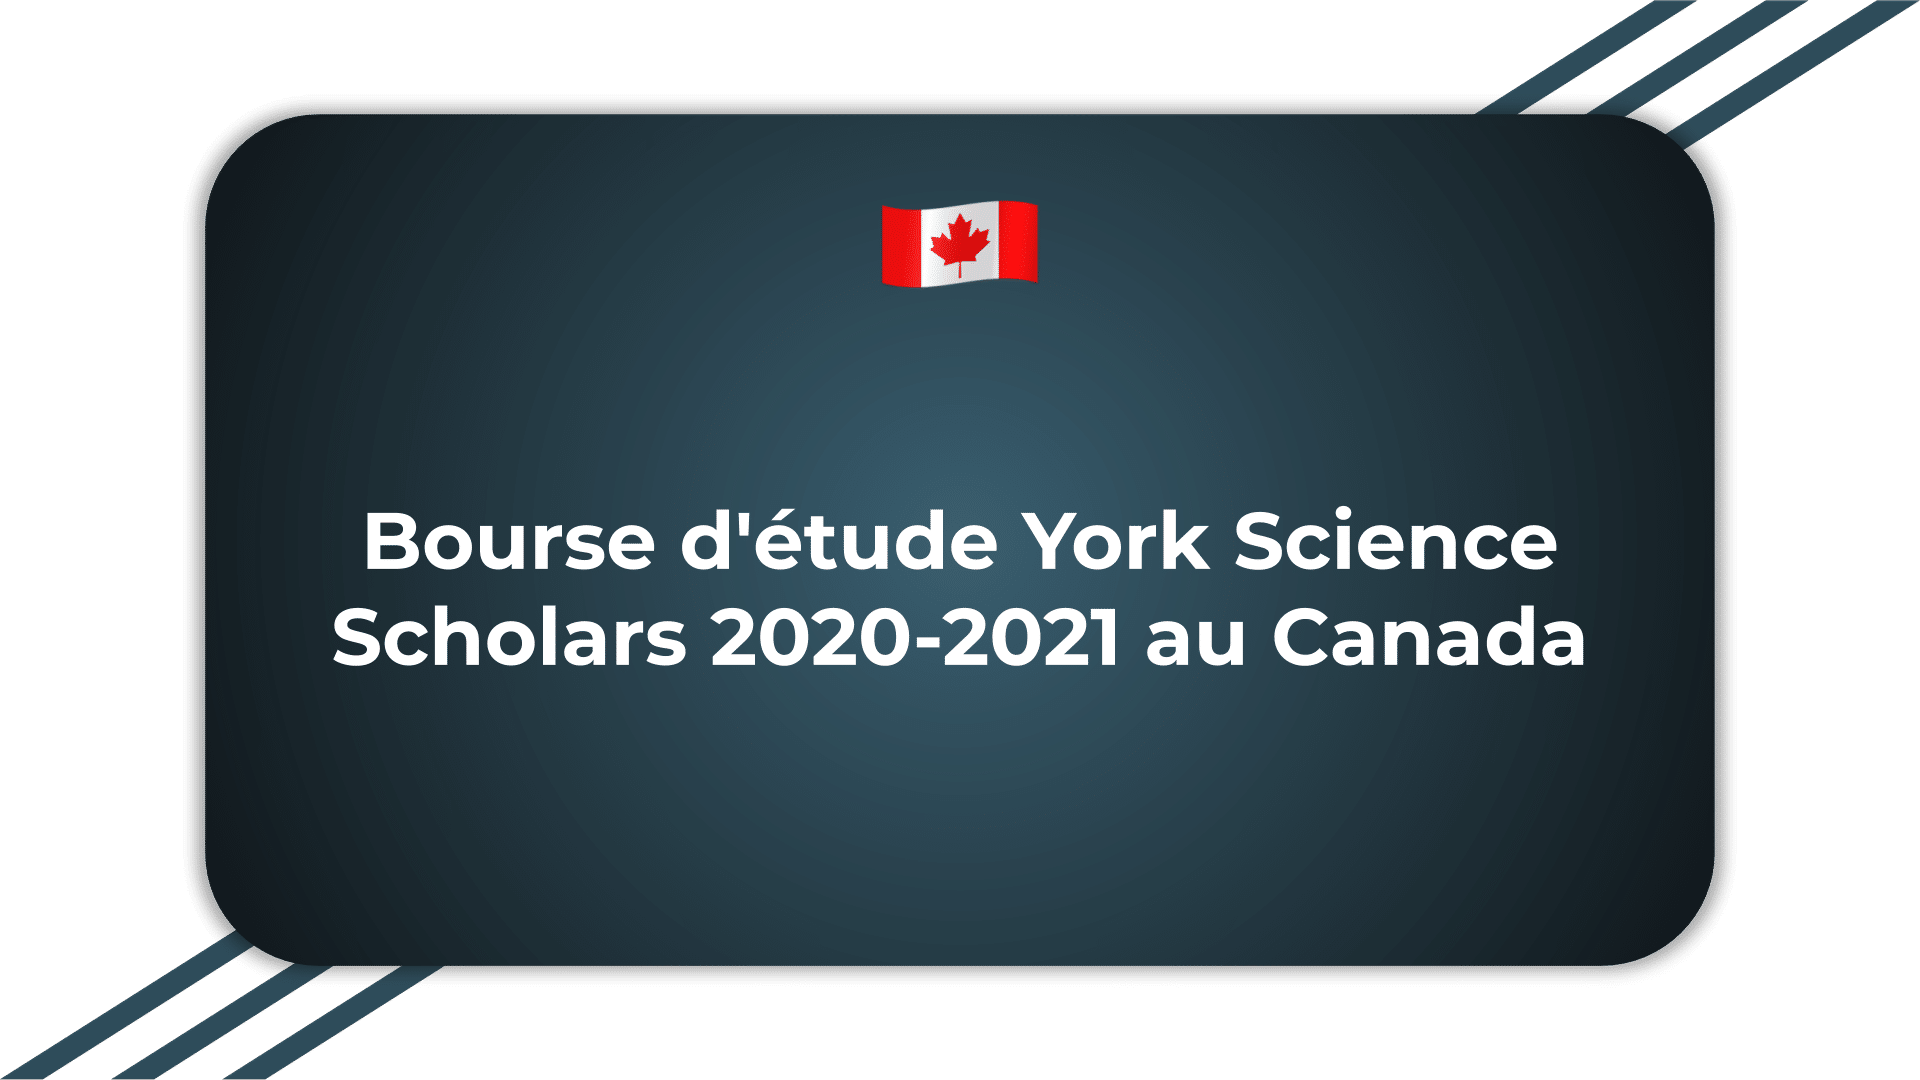 Bourse d'étude York Science Scholars